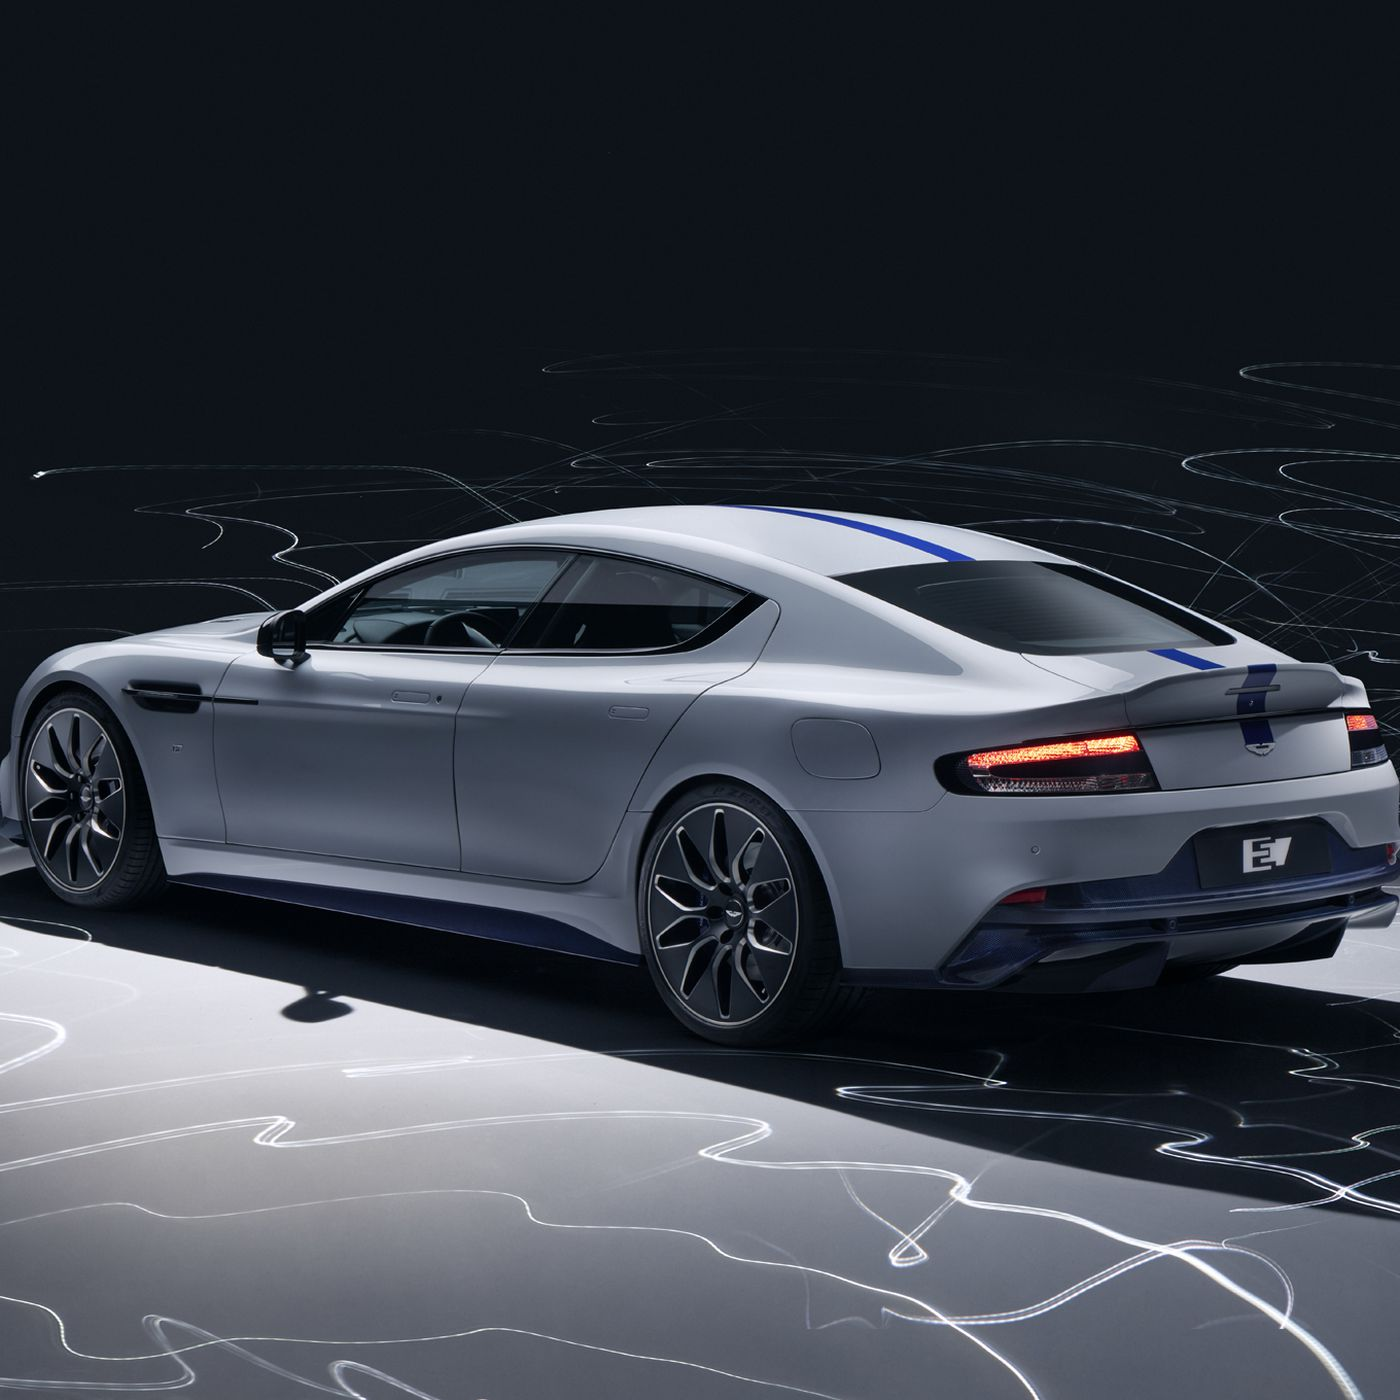 Aston Martin Won T Say Whether Its Electric Car Is Dead Or Alive The Verge